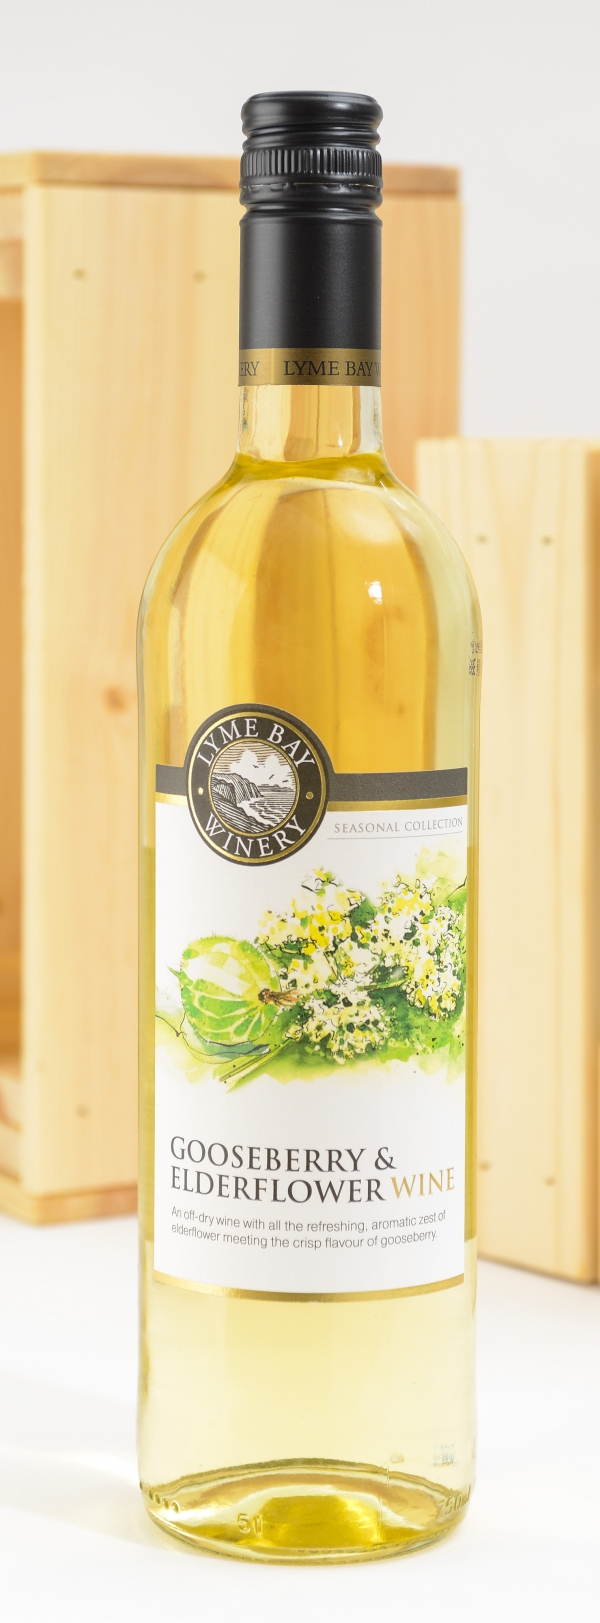 <p>Gooseberry Wine - light&sbquo; off/dry wine &#124; Hartington Cheese Shop</p>